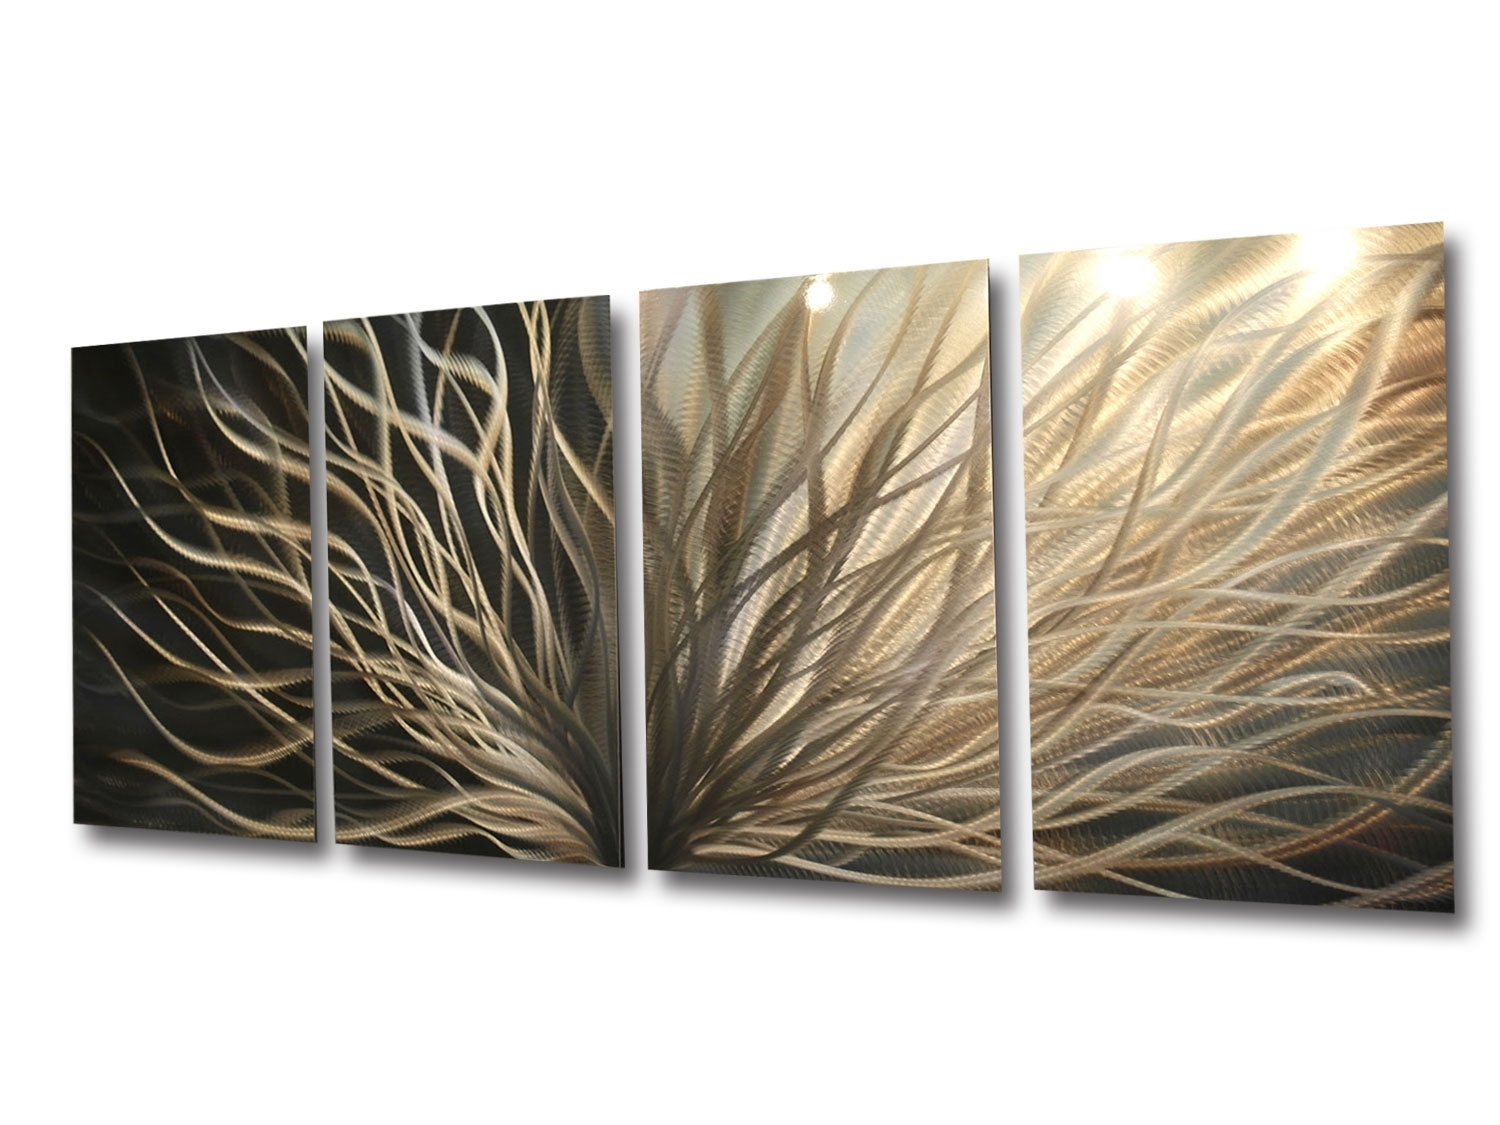 Abstract Metal Wall Art Radiance Gold Silver Contemporary Modern In Most Current Abstract Leaf Metal Wall Art (View 2 of 20)